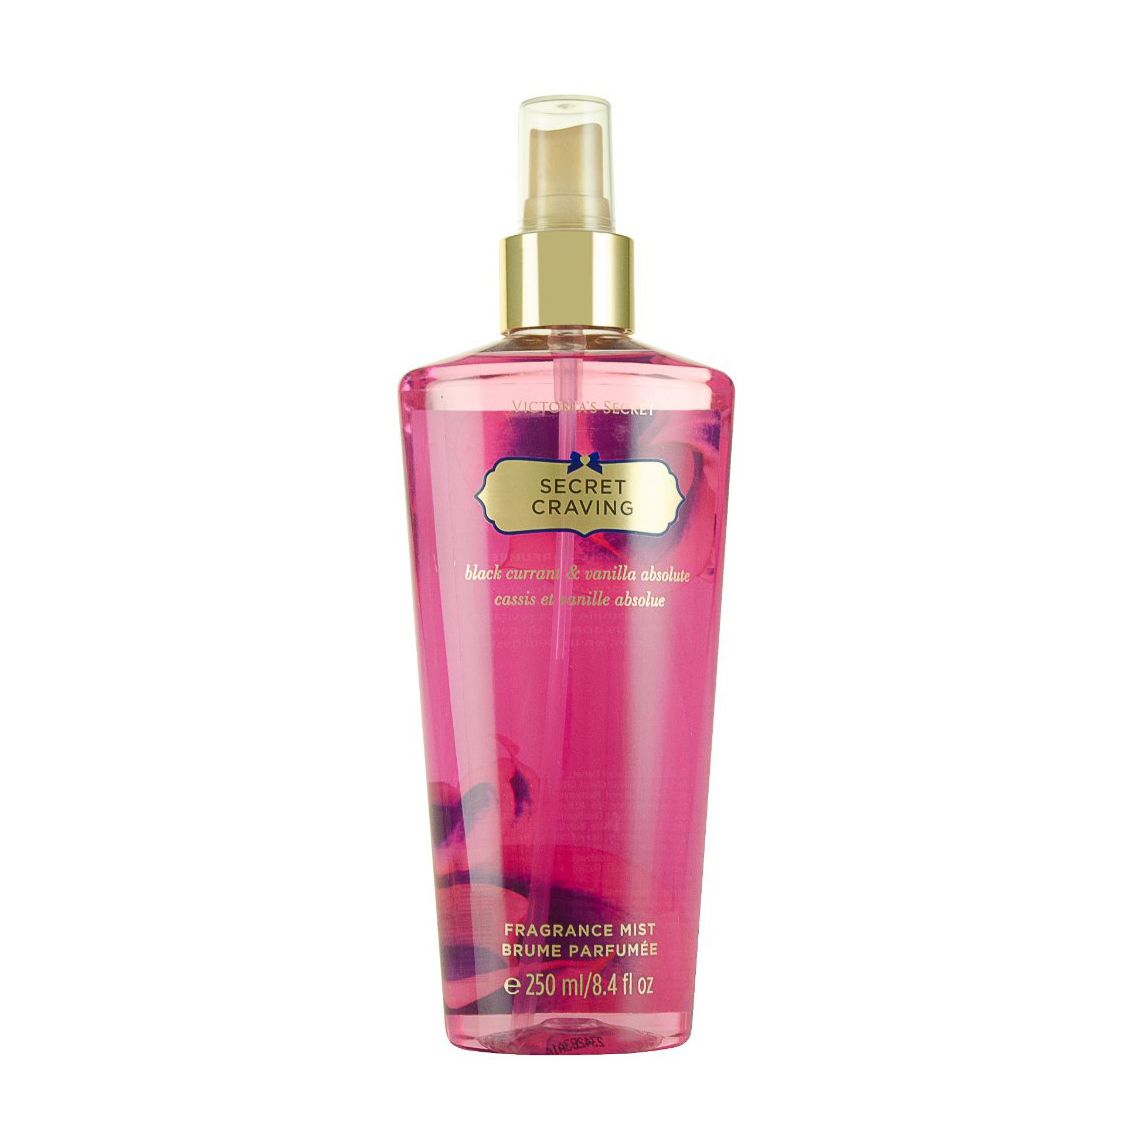 Victoria's Secret Secret Craving Body Mist 250ml thumbnail